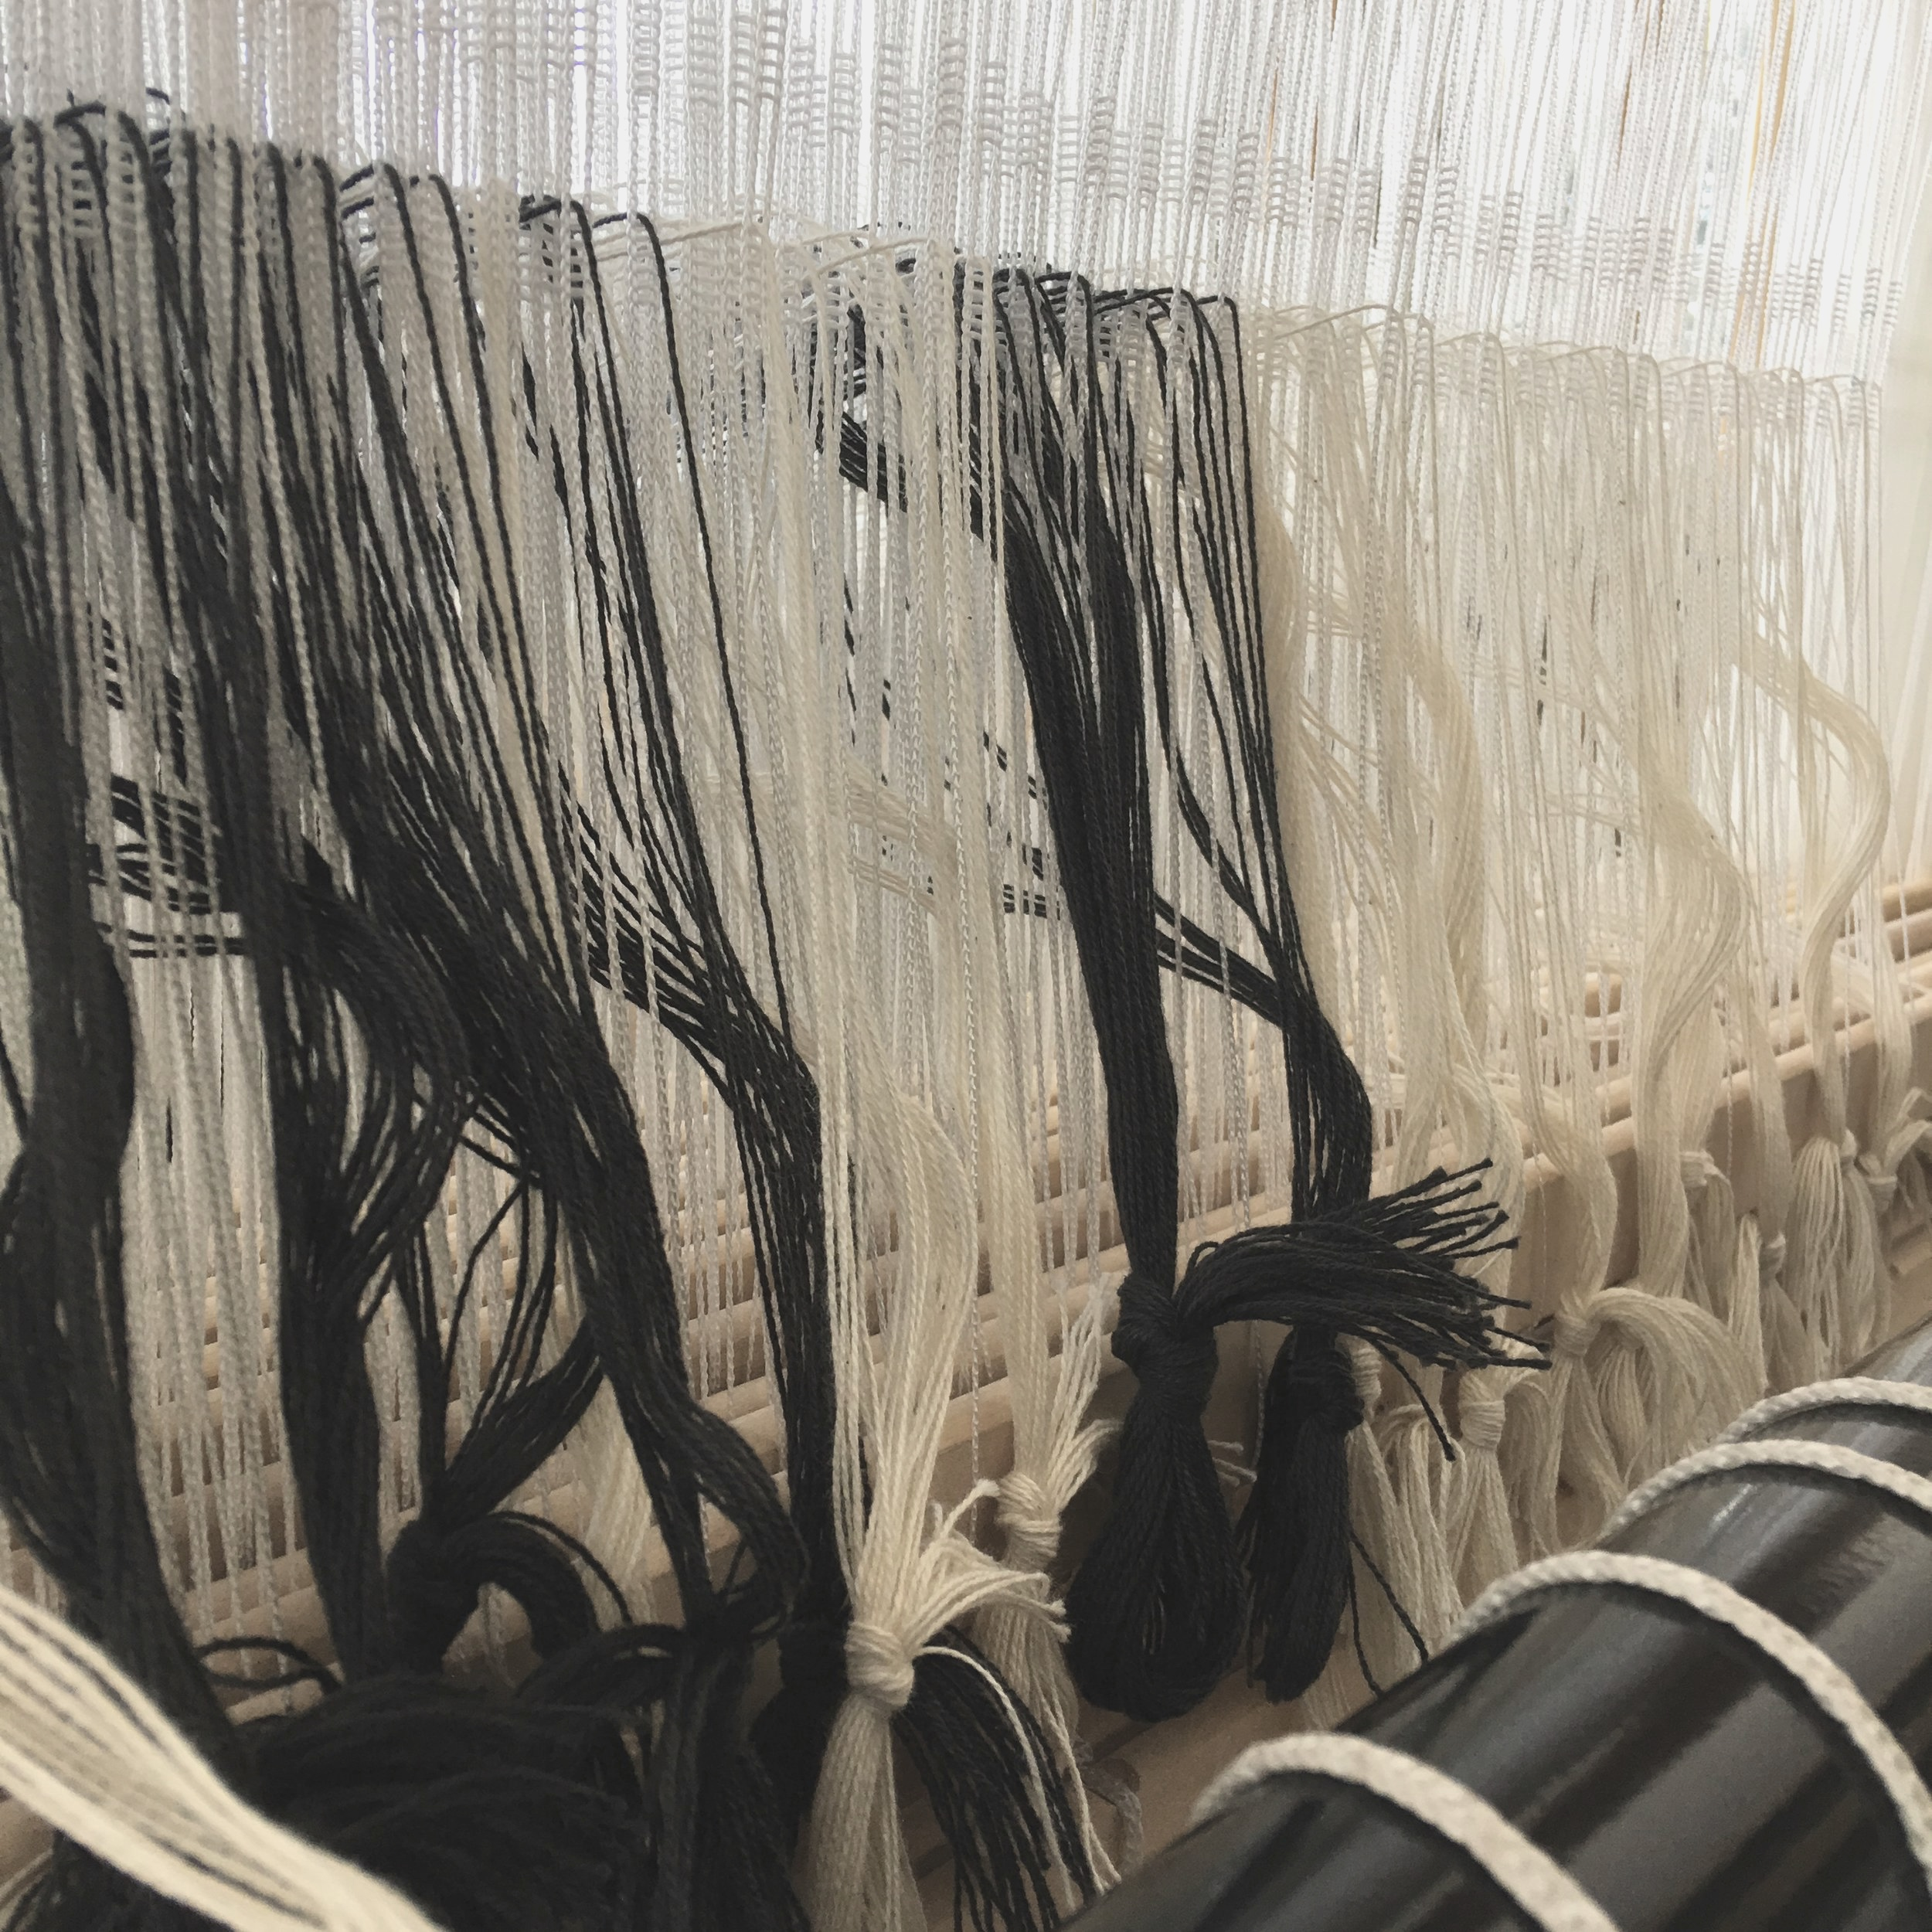 Threading the Heddles…. - Each end feeds through a heddle assigned to a shaft. The amount of ends range but our towels can have as many as 600 ends. That's 600 heddles threaded for one project.